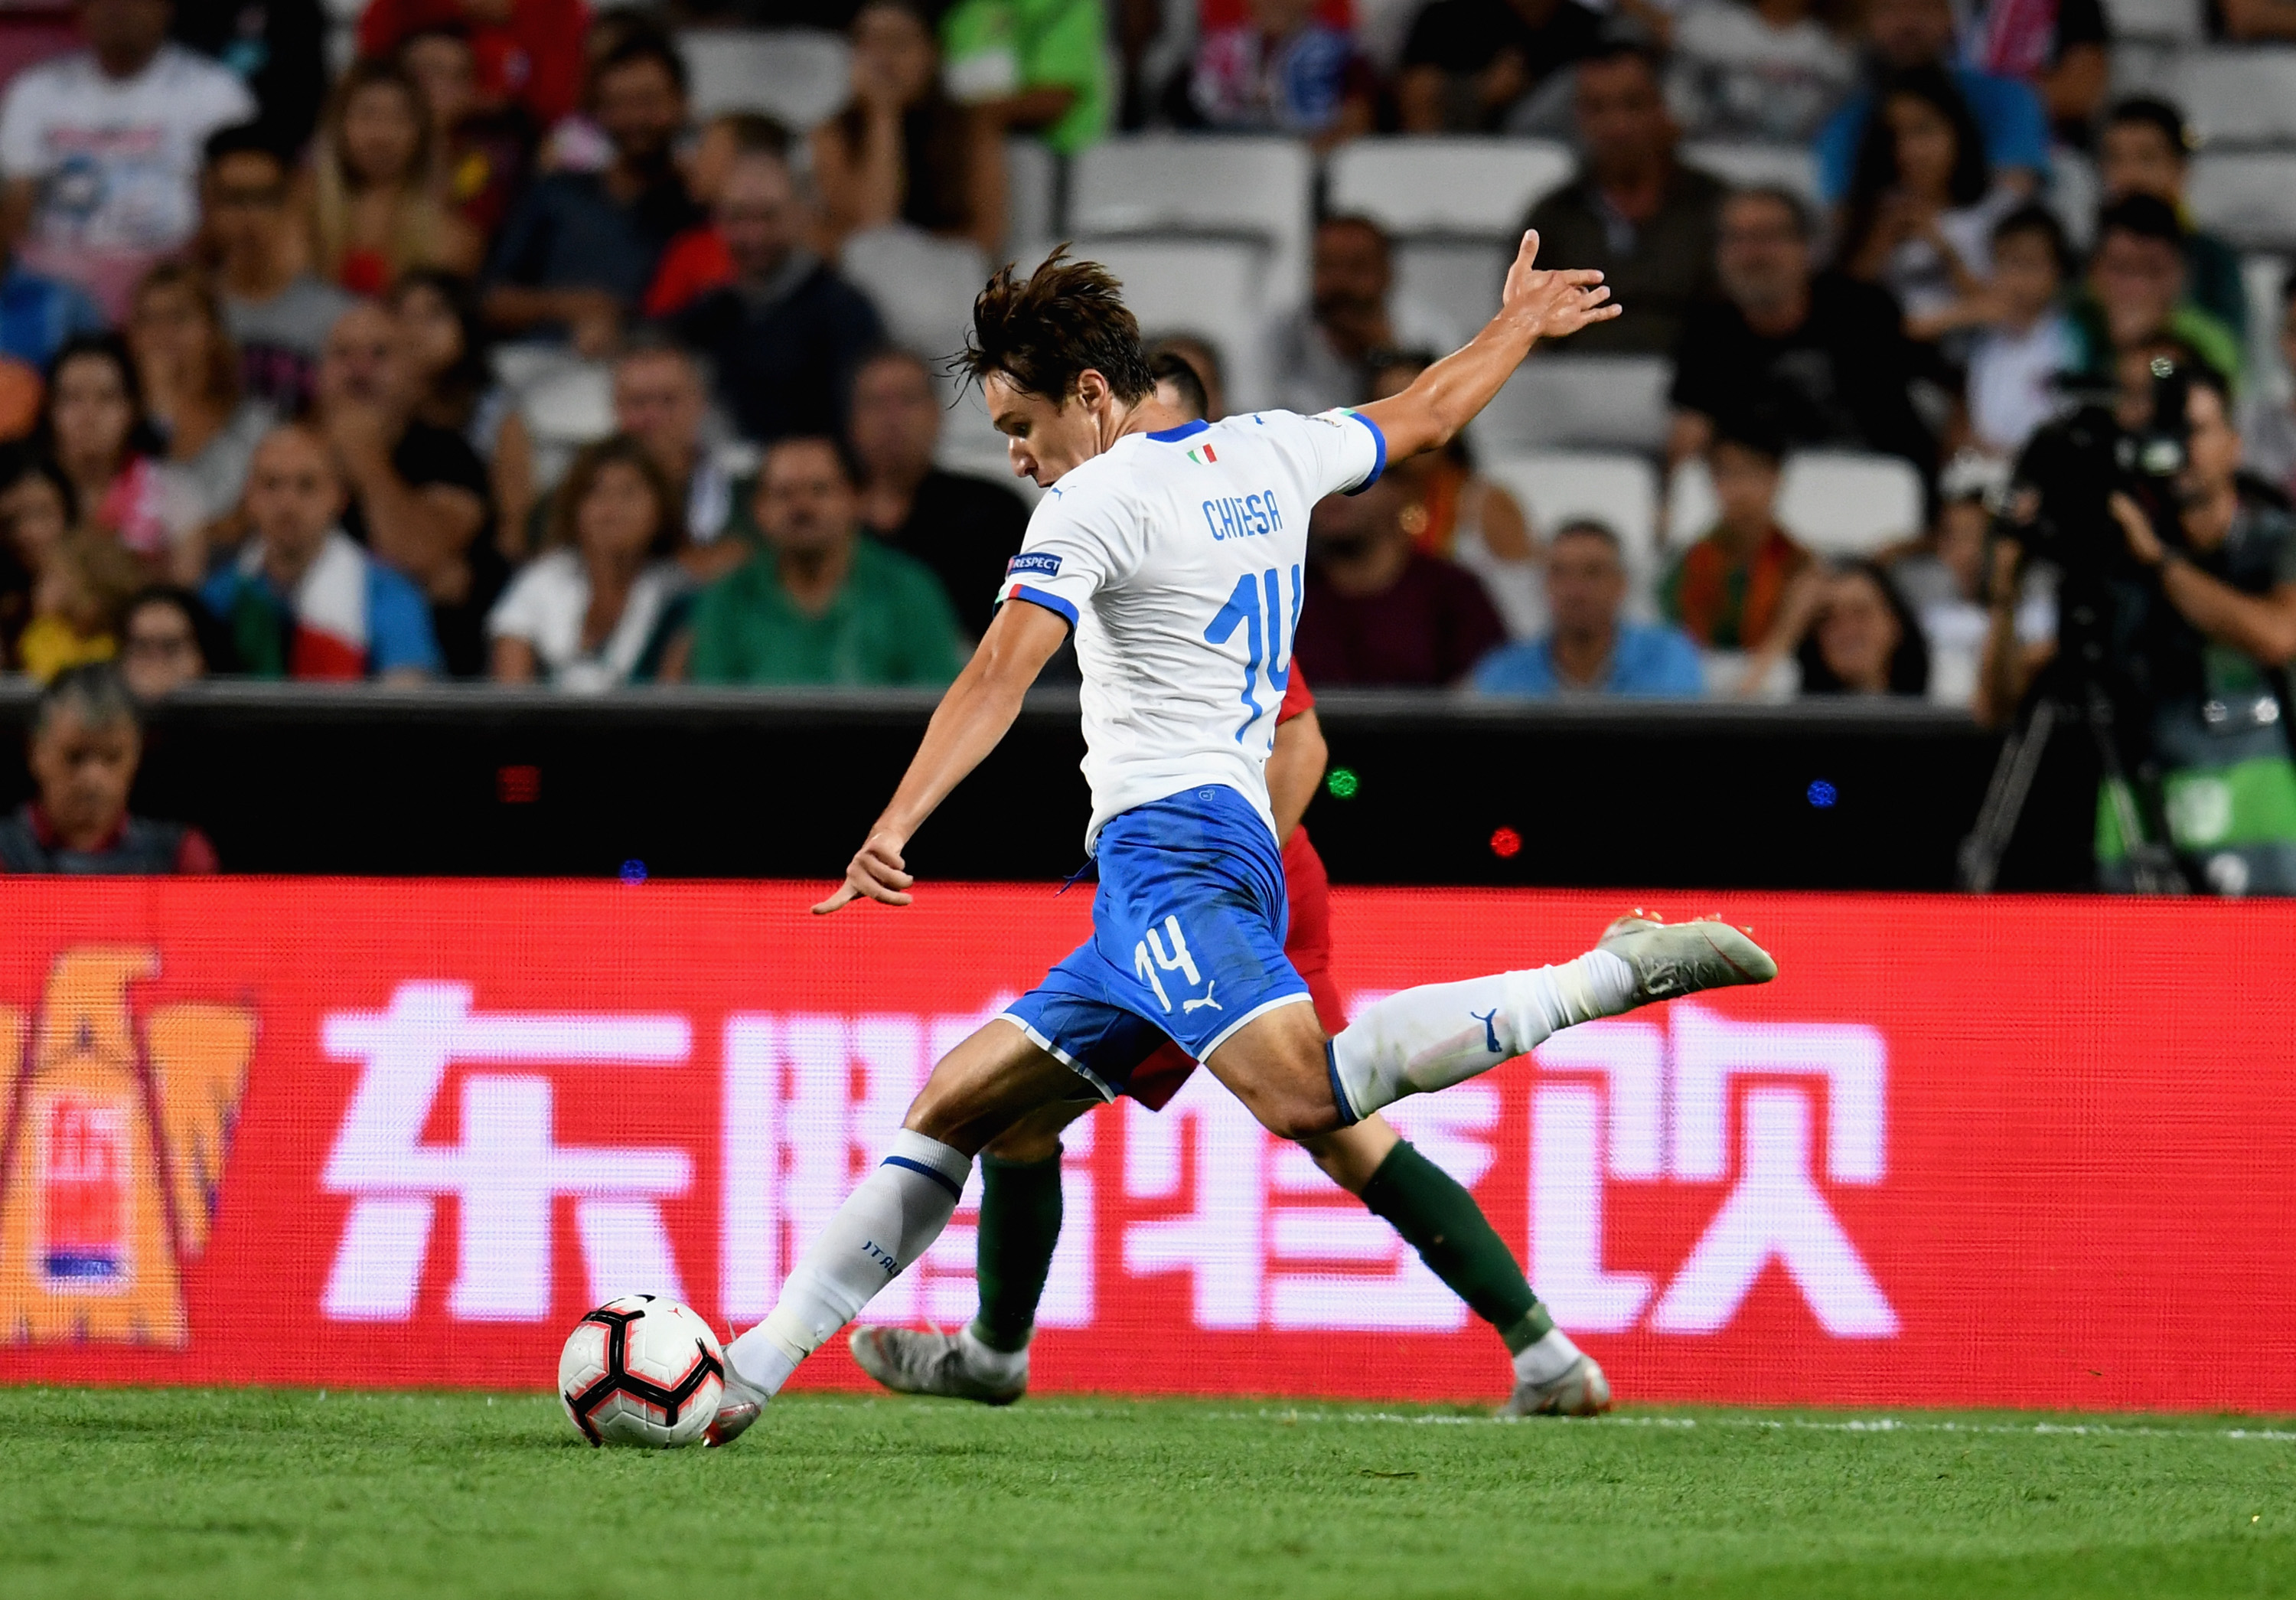 Federico Chiesa will be aiming to make the most of his chance (Photo by Claudio Villa/Getty Images)